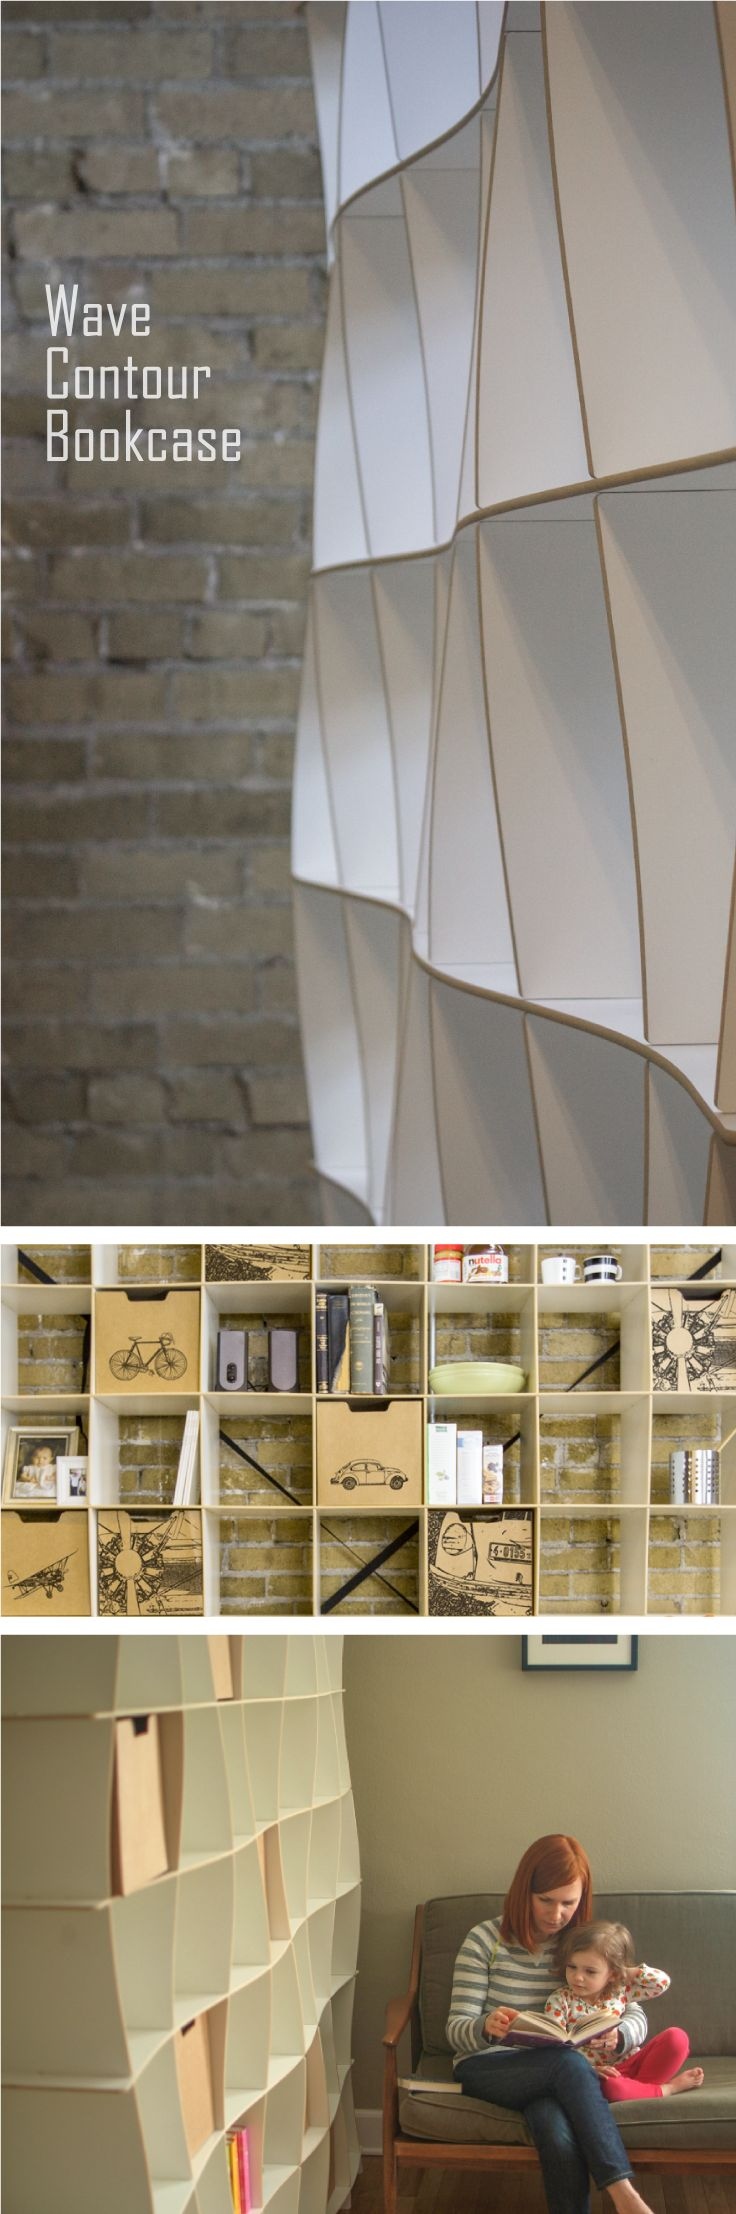 Best 10 hotel images on pinterest hotels hotel interiors and studio step up your style with a wave modern bookshelf these classy modern storage cubes are spacious with plenty of room for all your storage needs malvernweather Choice Image